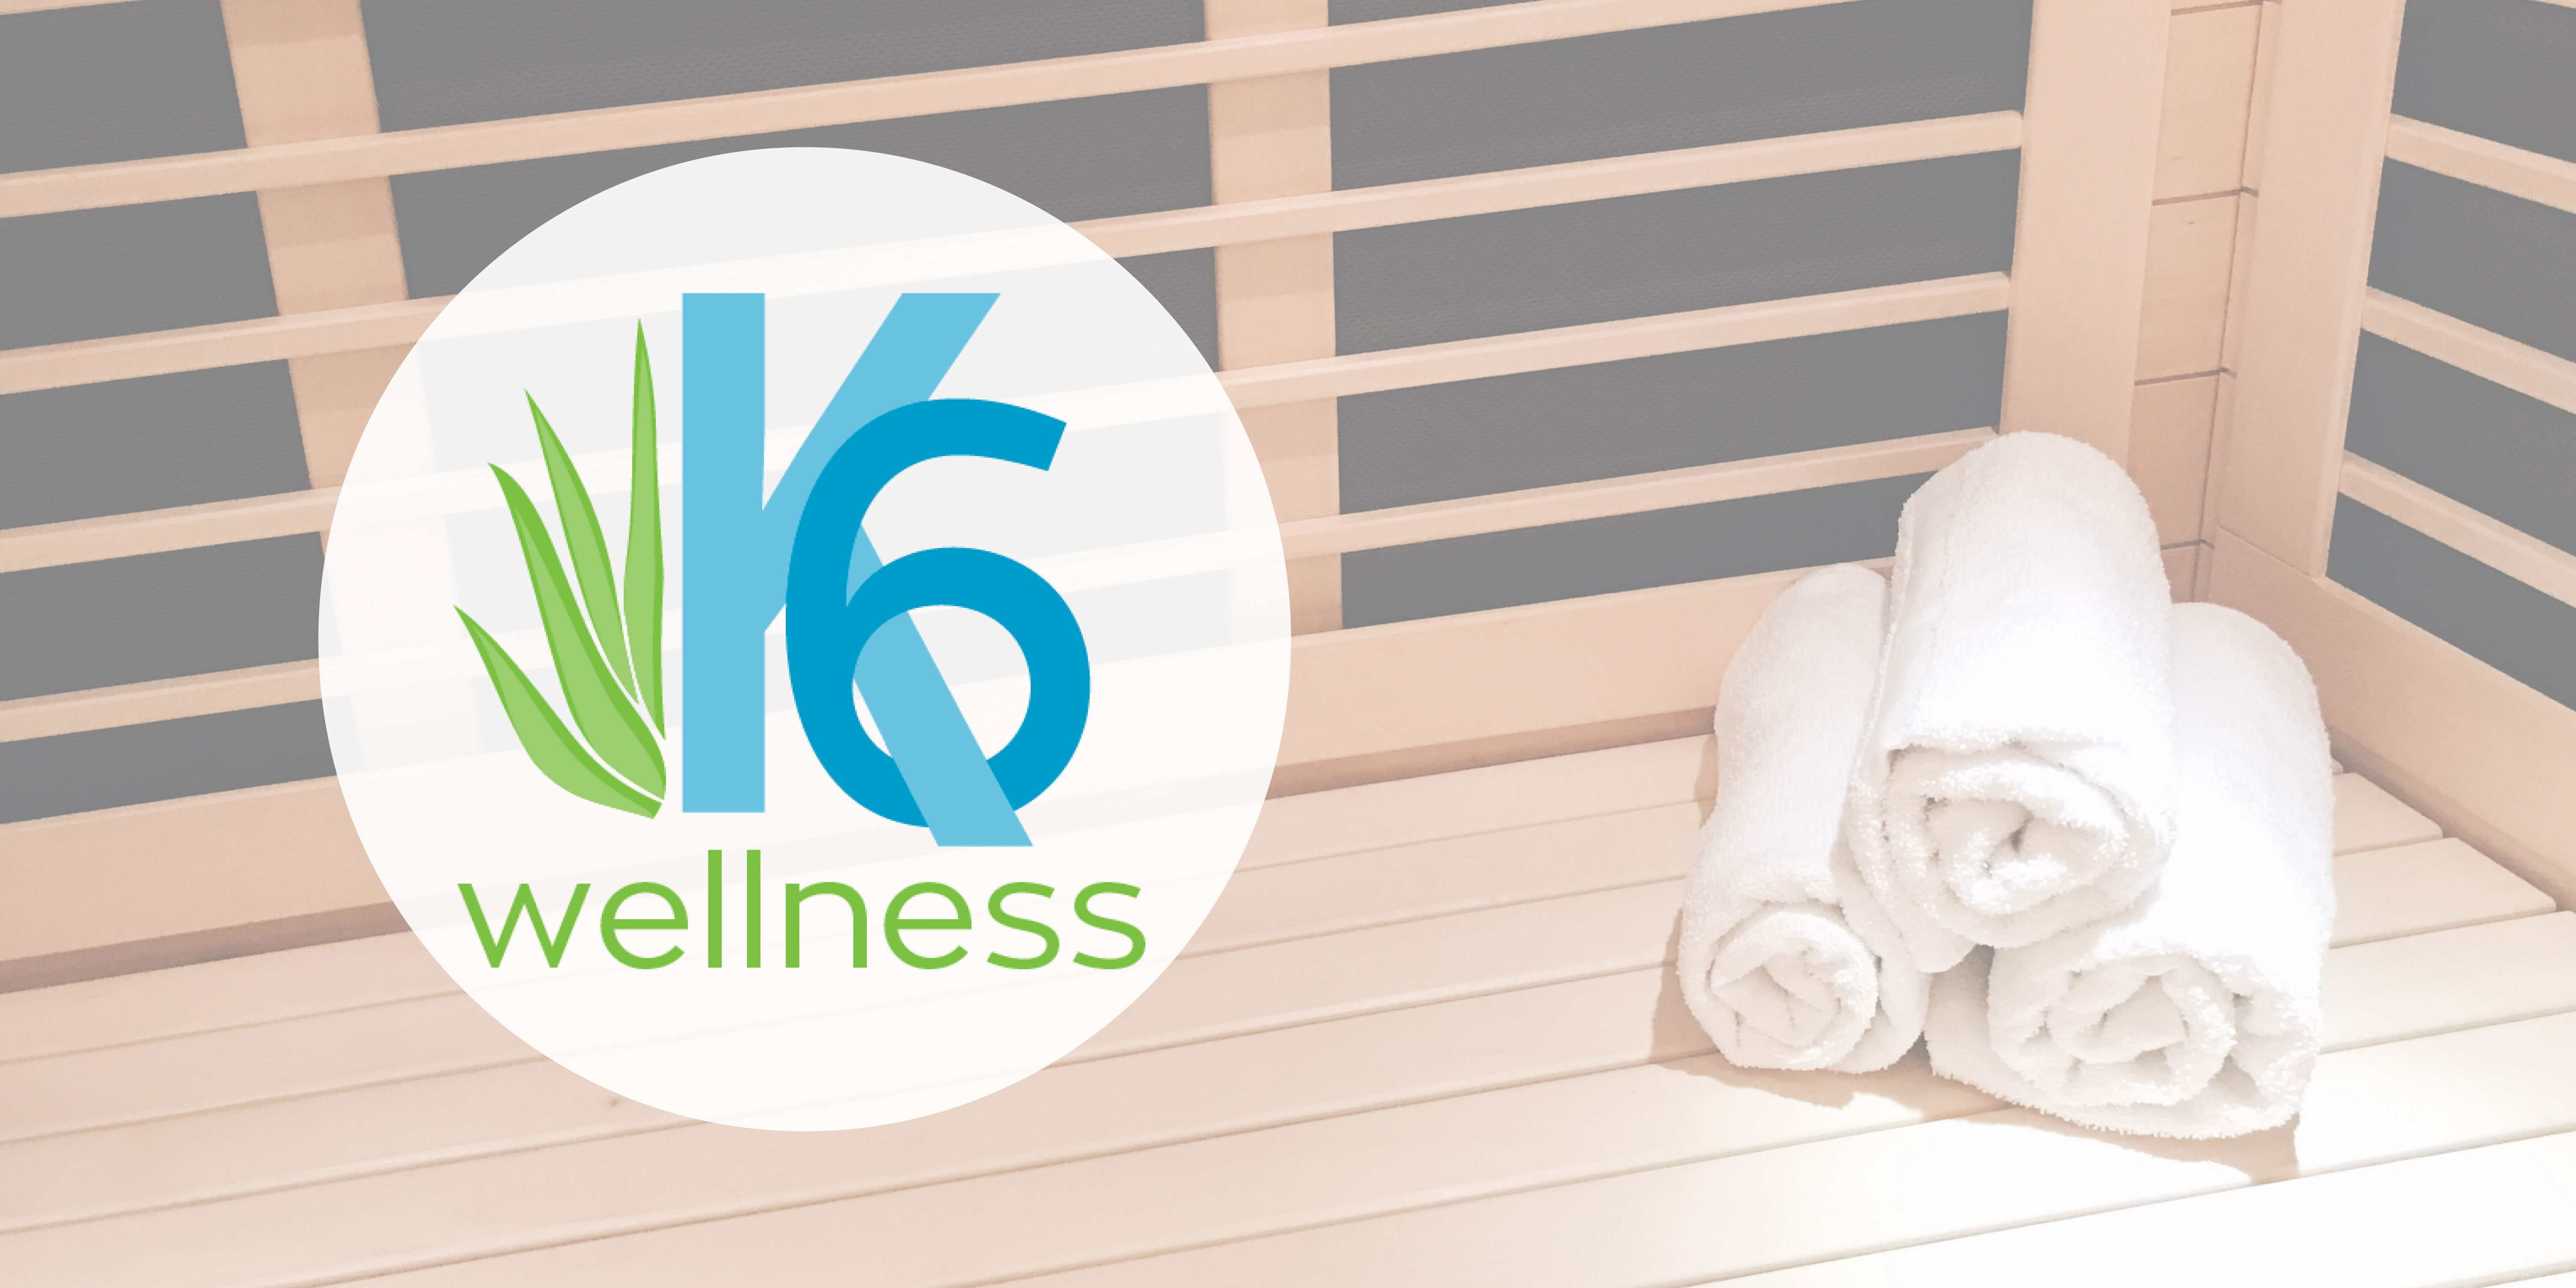 Far infrared Sauna, sauna, k6 wellness, wellness center